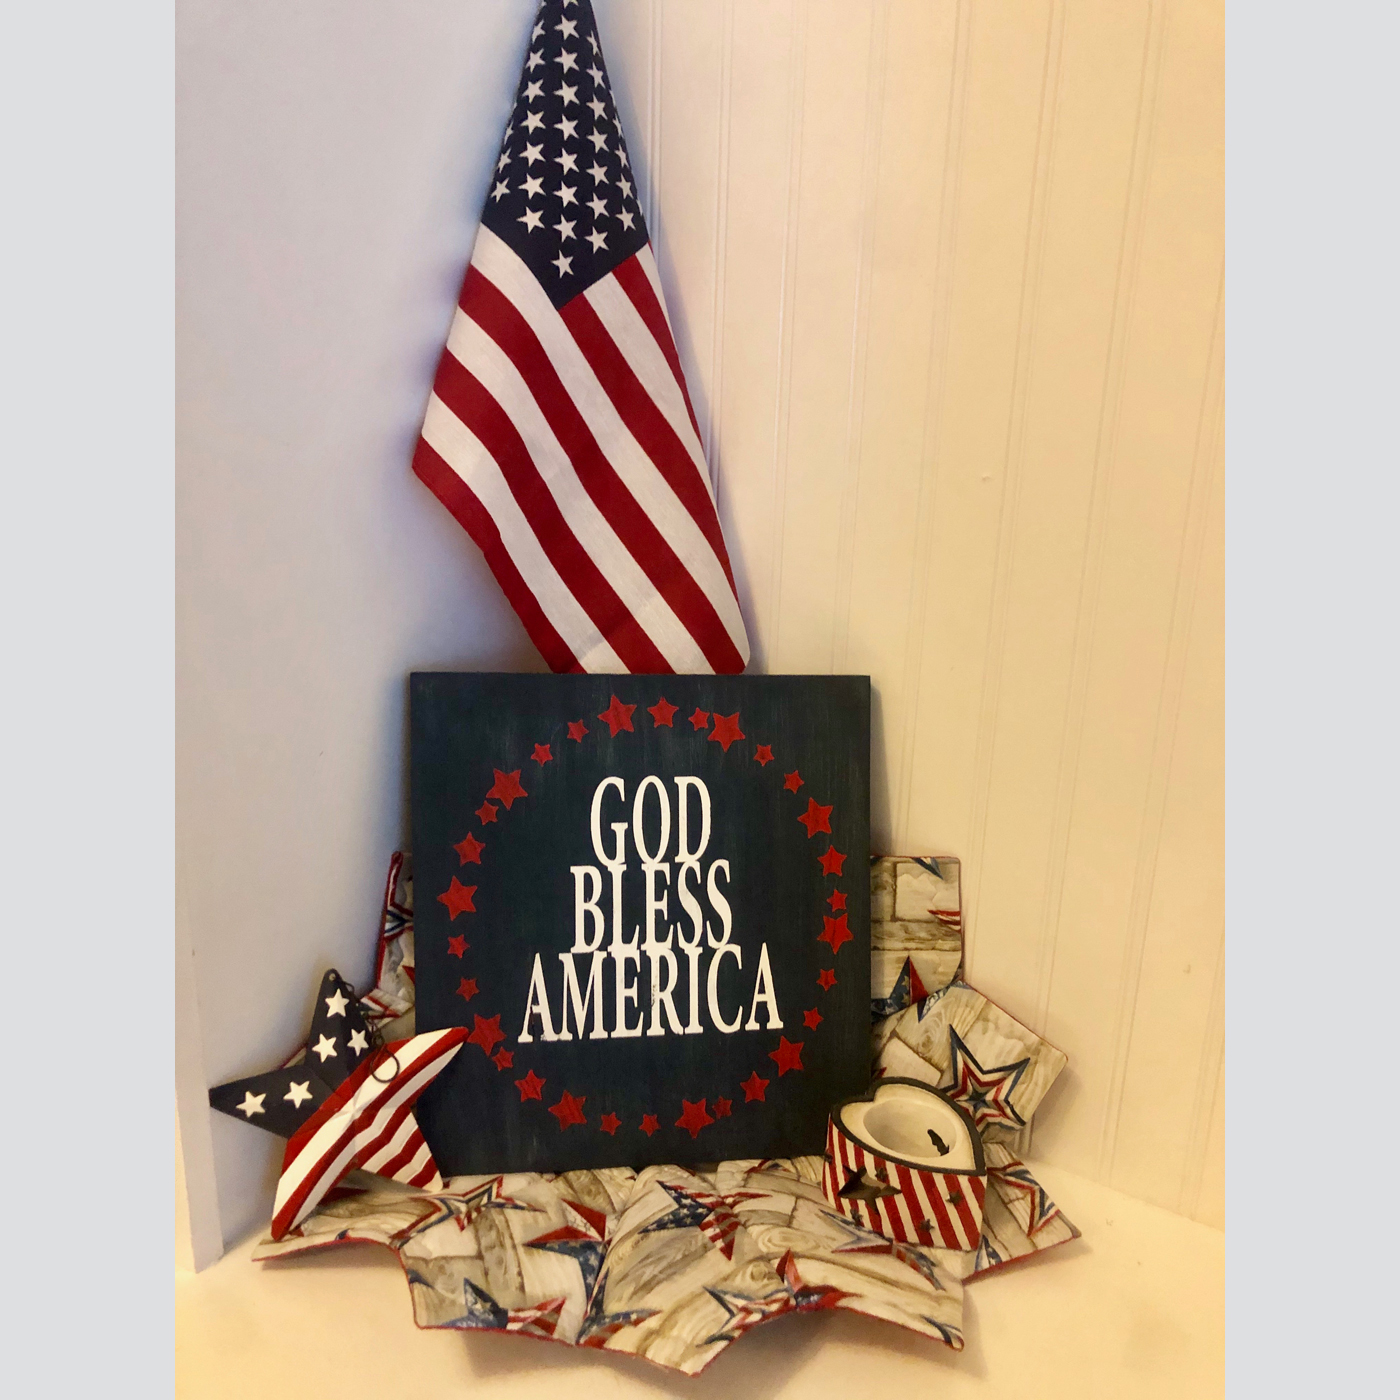 God Bless America DIY wood sign patriotic 4th of July